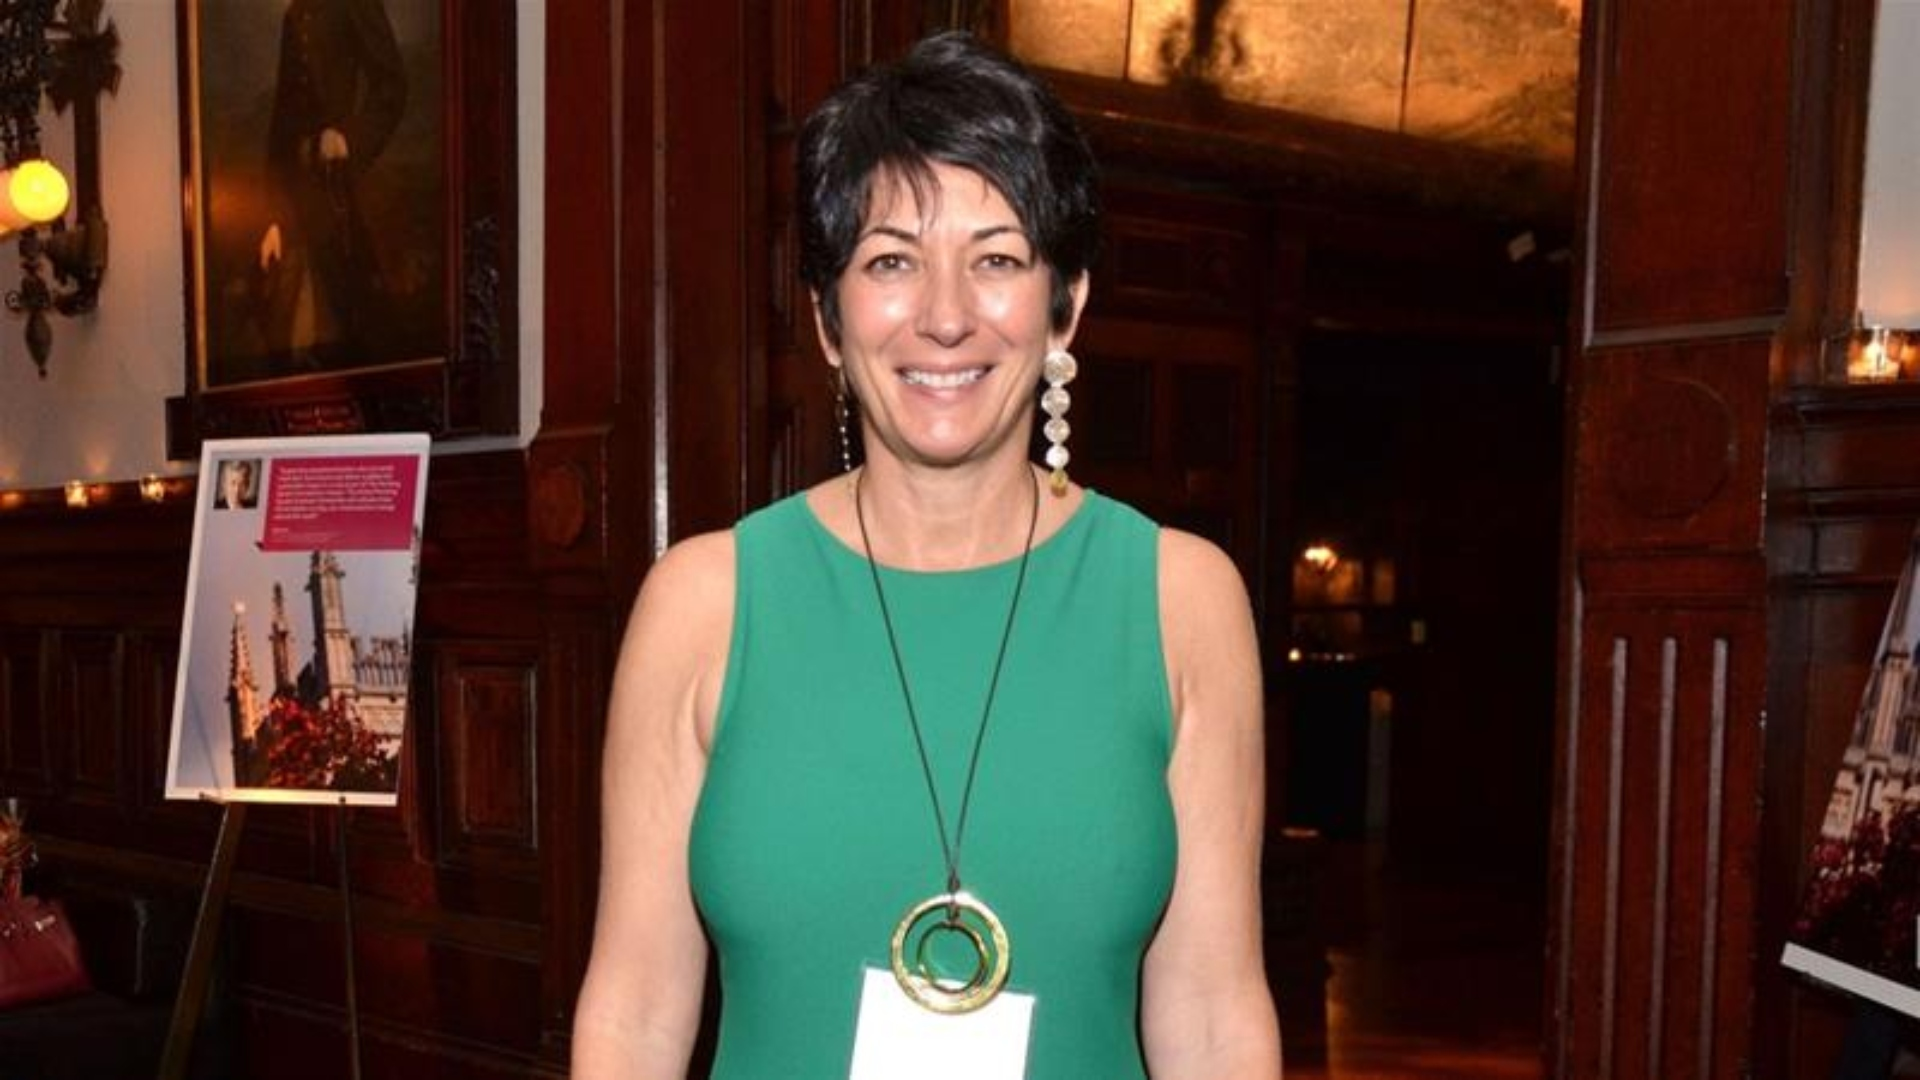 With all her connections, Ghislaine Maxwell must have the most expensive legal team in the US on her side. But is her net worth that big?